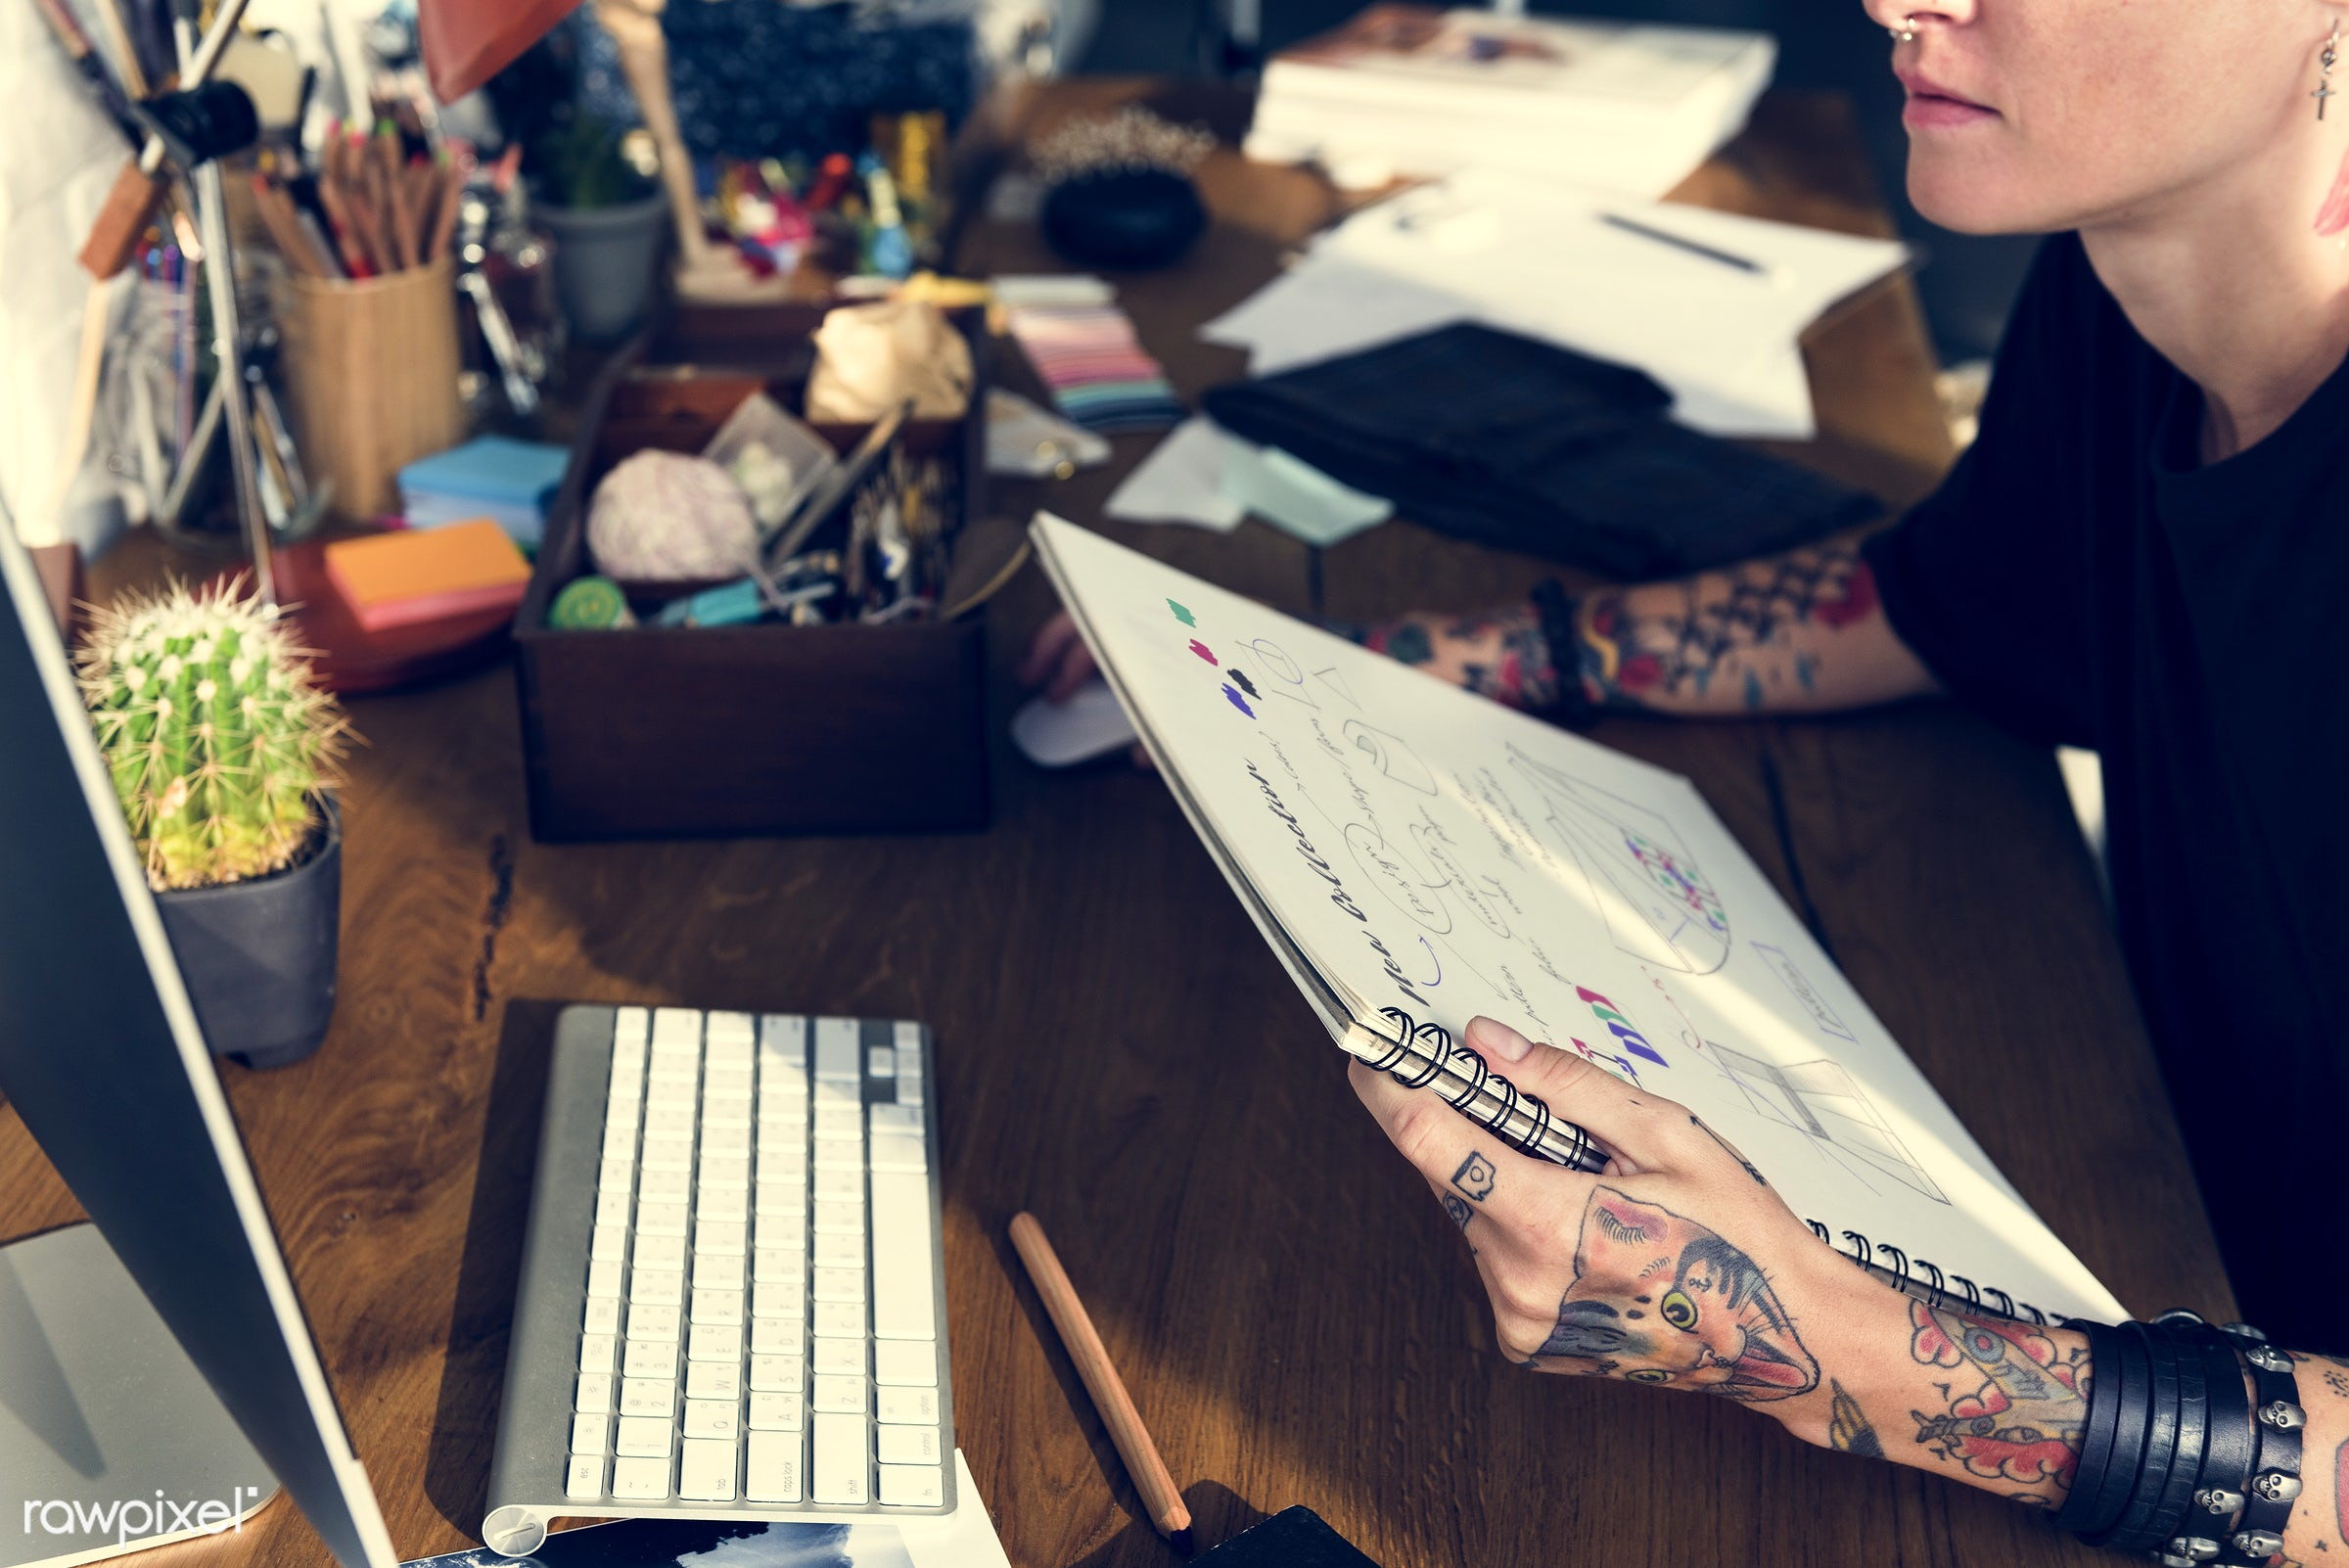 trends, analyzing, fashion, fashion notes, sketchpad, new ideas, profession, concentrating, focusing, trendy, magazine,...